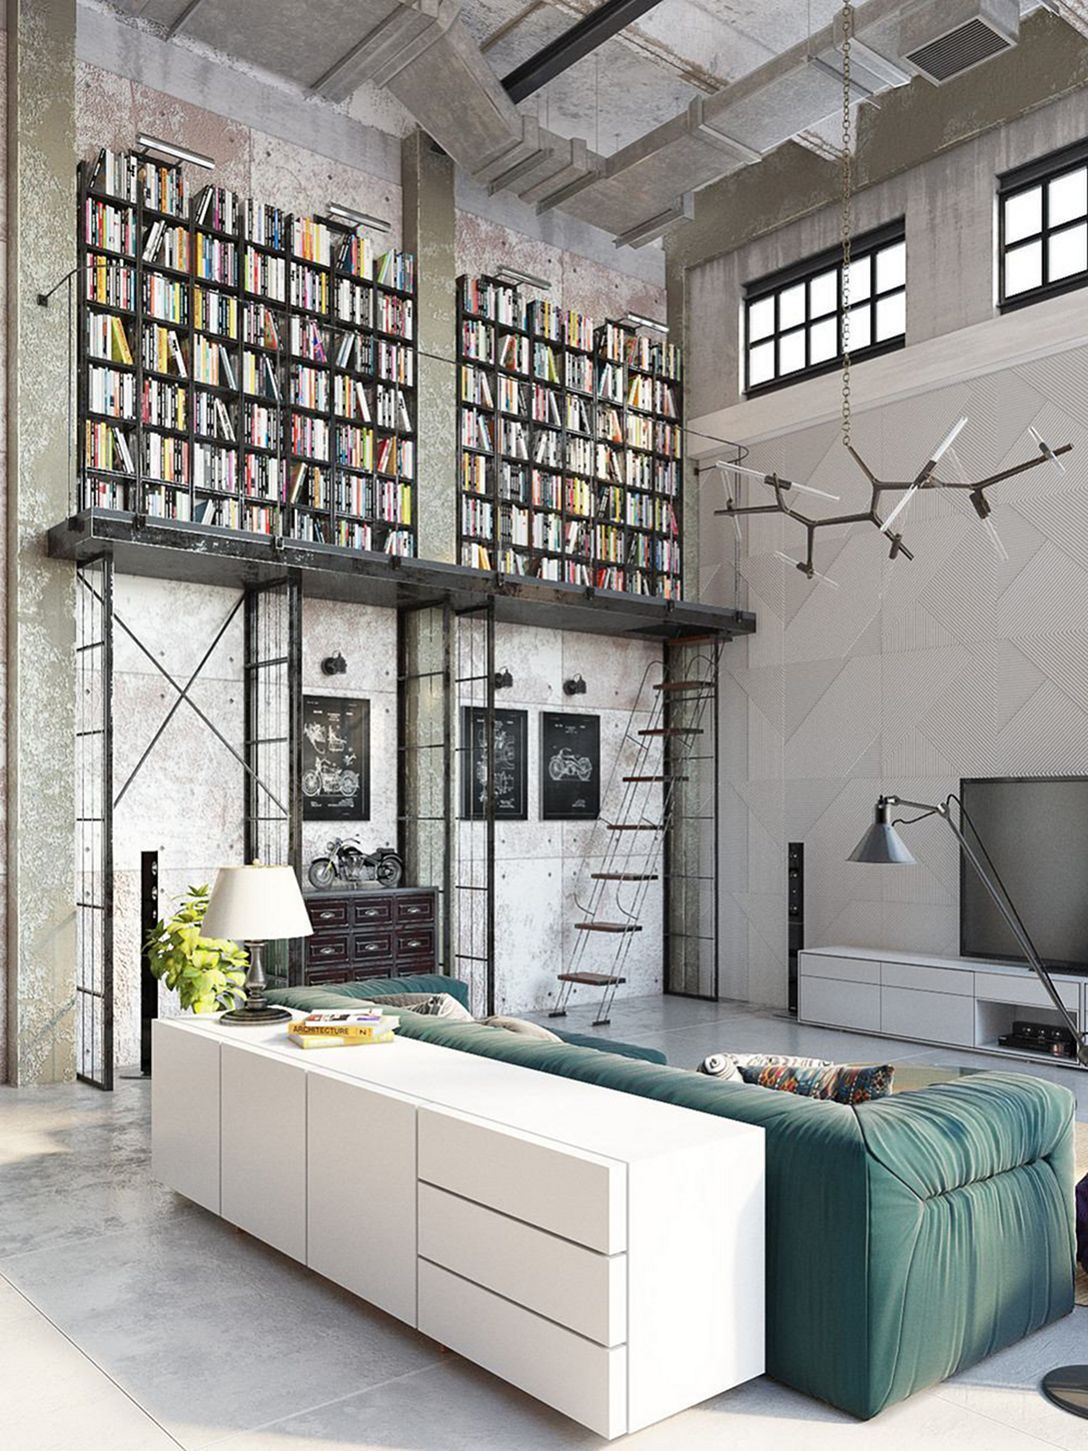 Modern interior design ideas for your home renovation also friday finds sfgirlbybay blogs rh pinterest